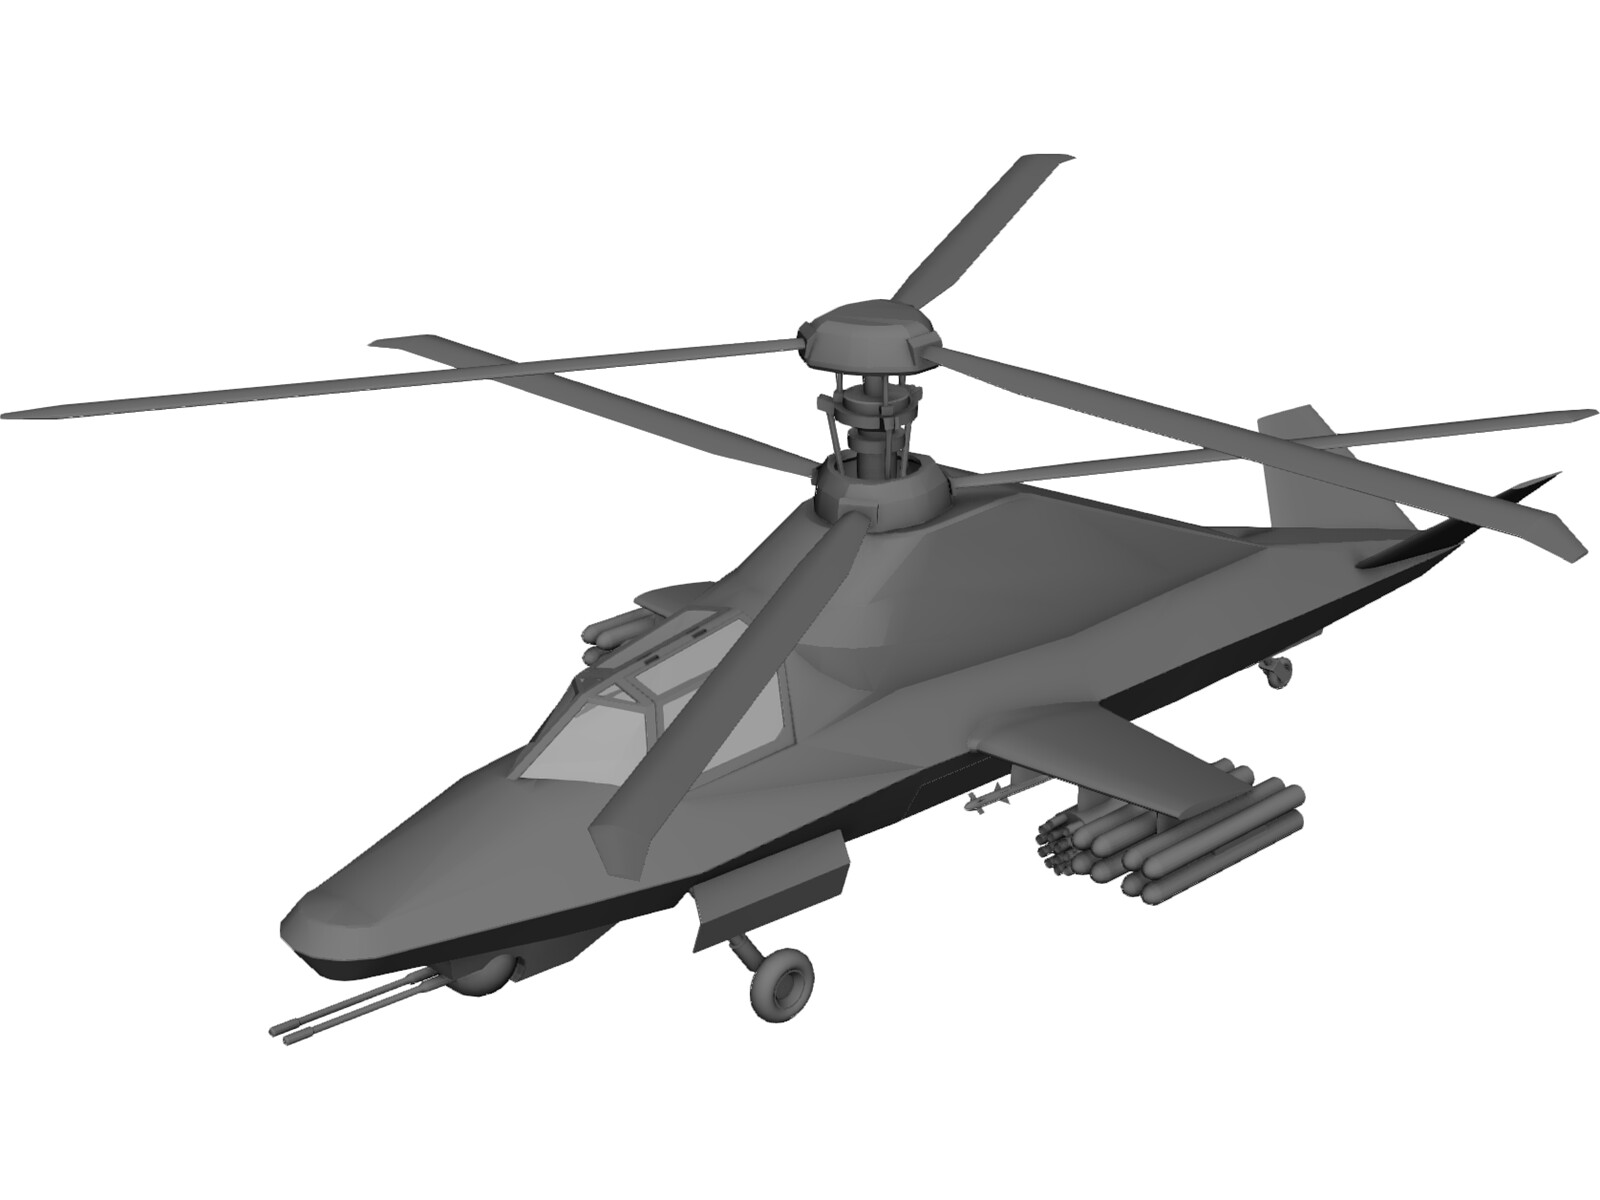 helix rc helicopter with Download on Kmart Flying Present in addition Whats The Difference Between Gibson And Epiphone Les Pauls likewise Propeller 1 together with Listado productos as well Air Hogs Helix X4 Stunt Rc.